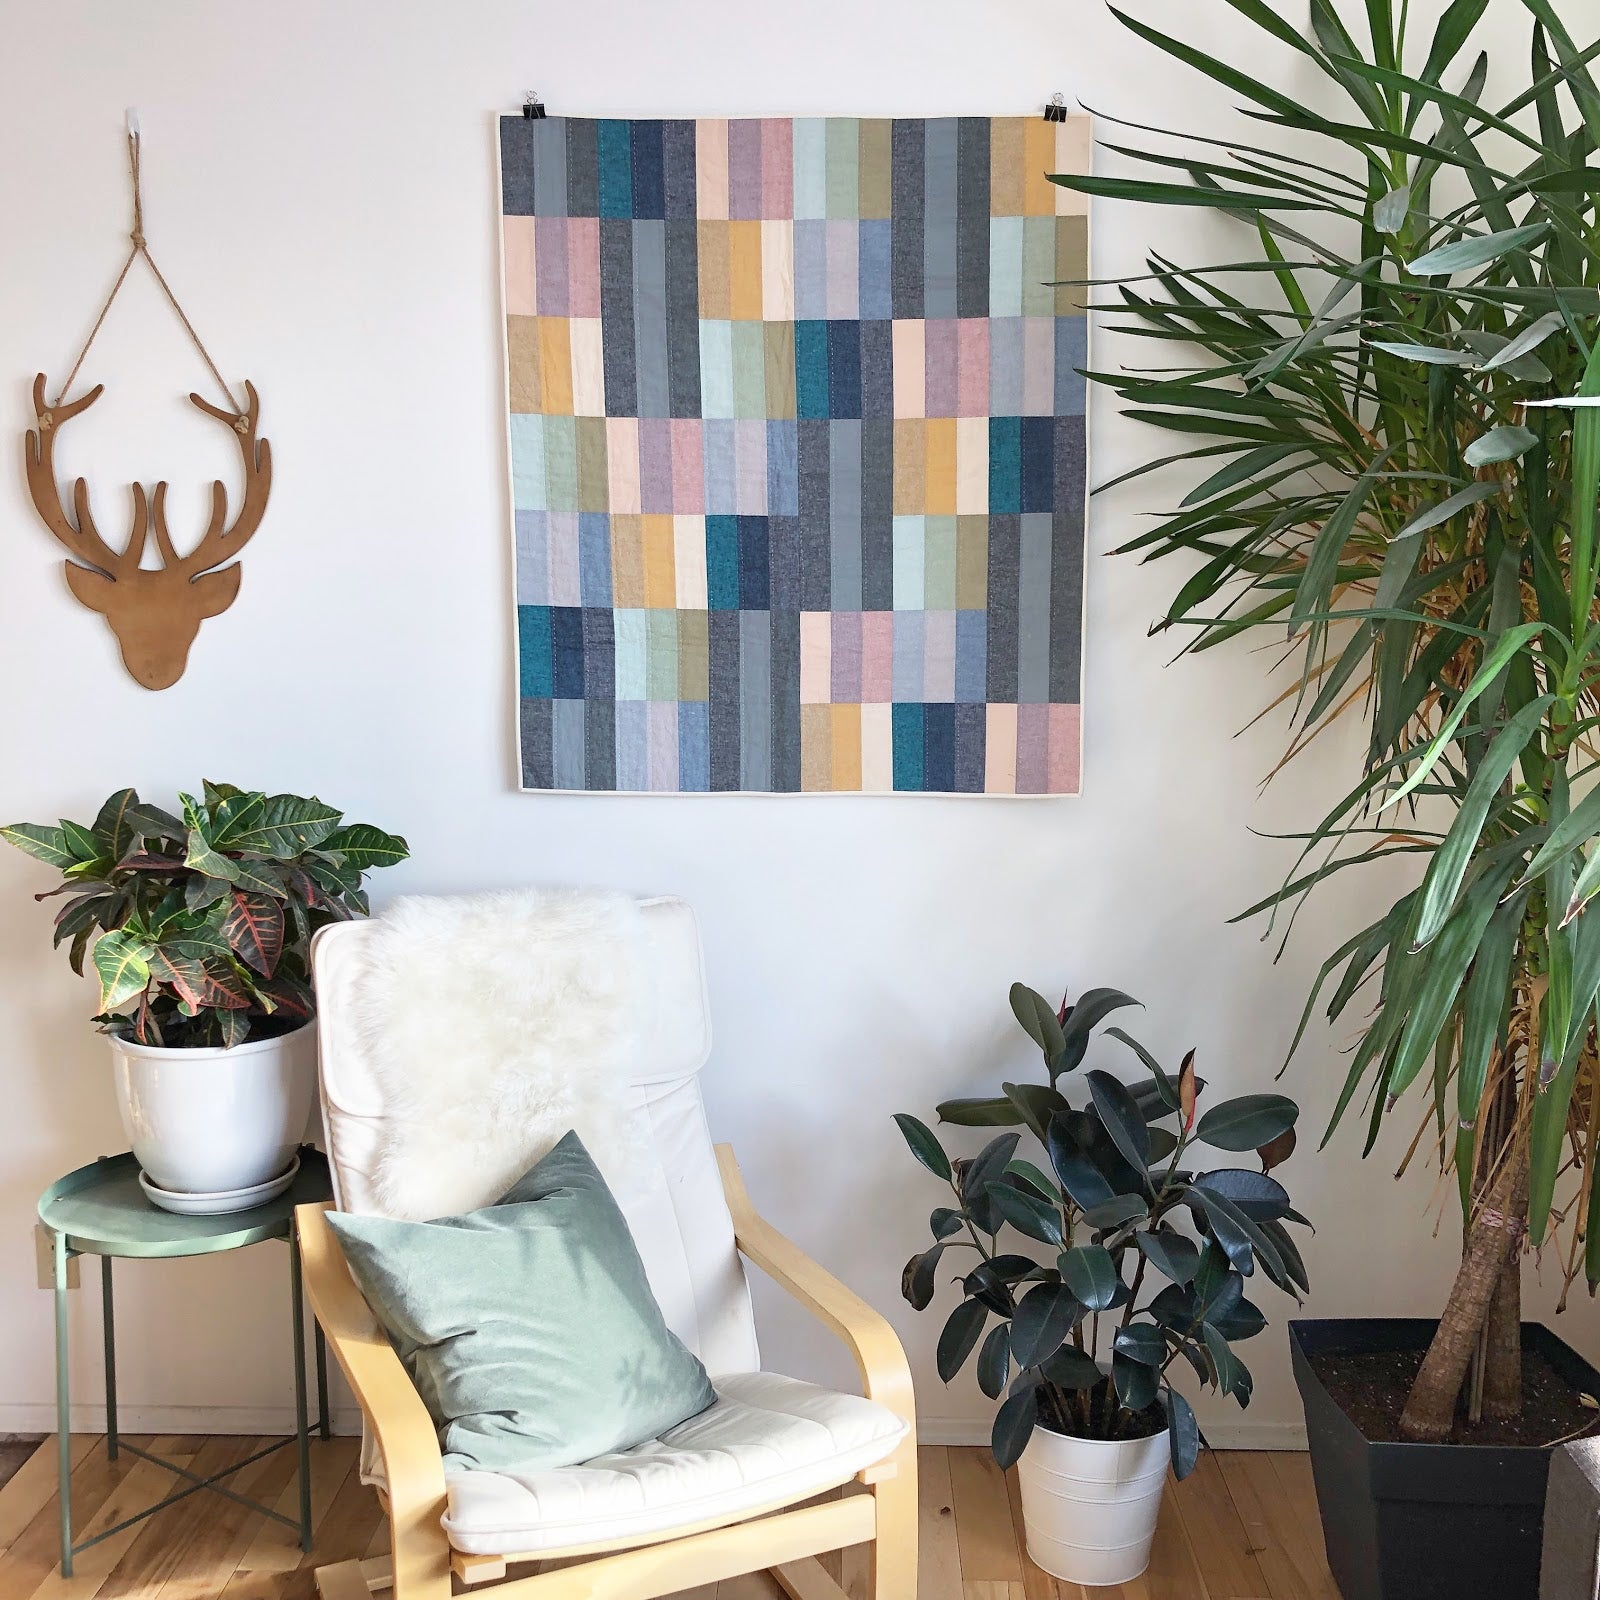 Essex Linen Paint Lake Quilt Hanging On Wall